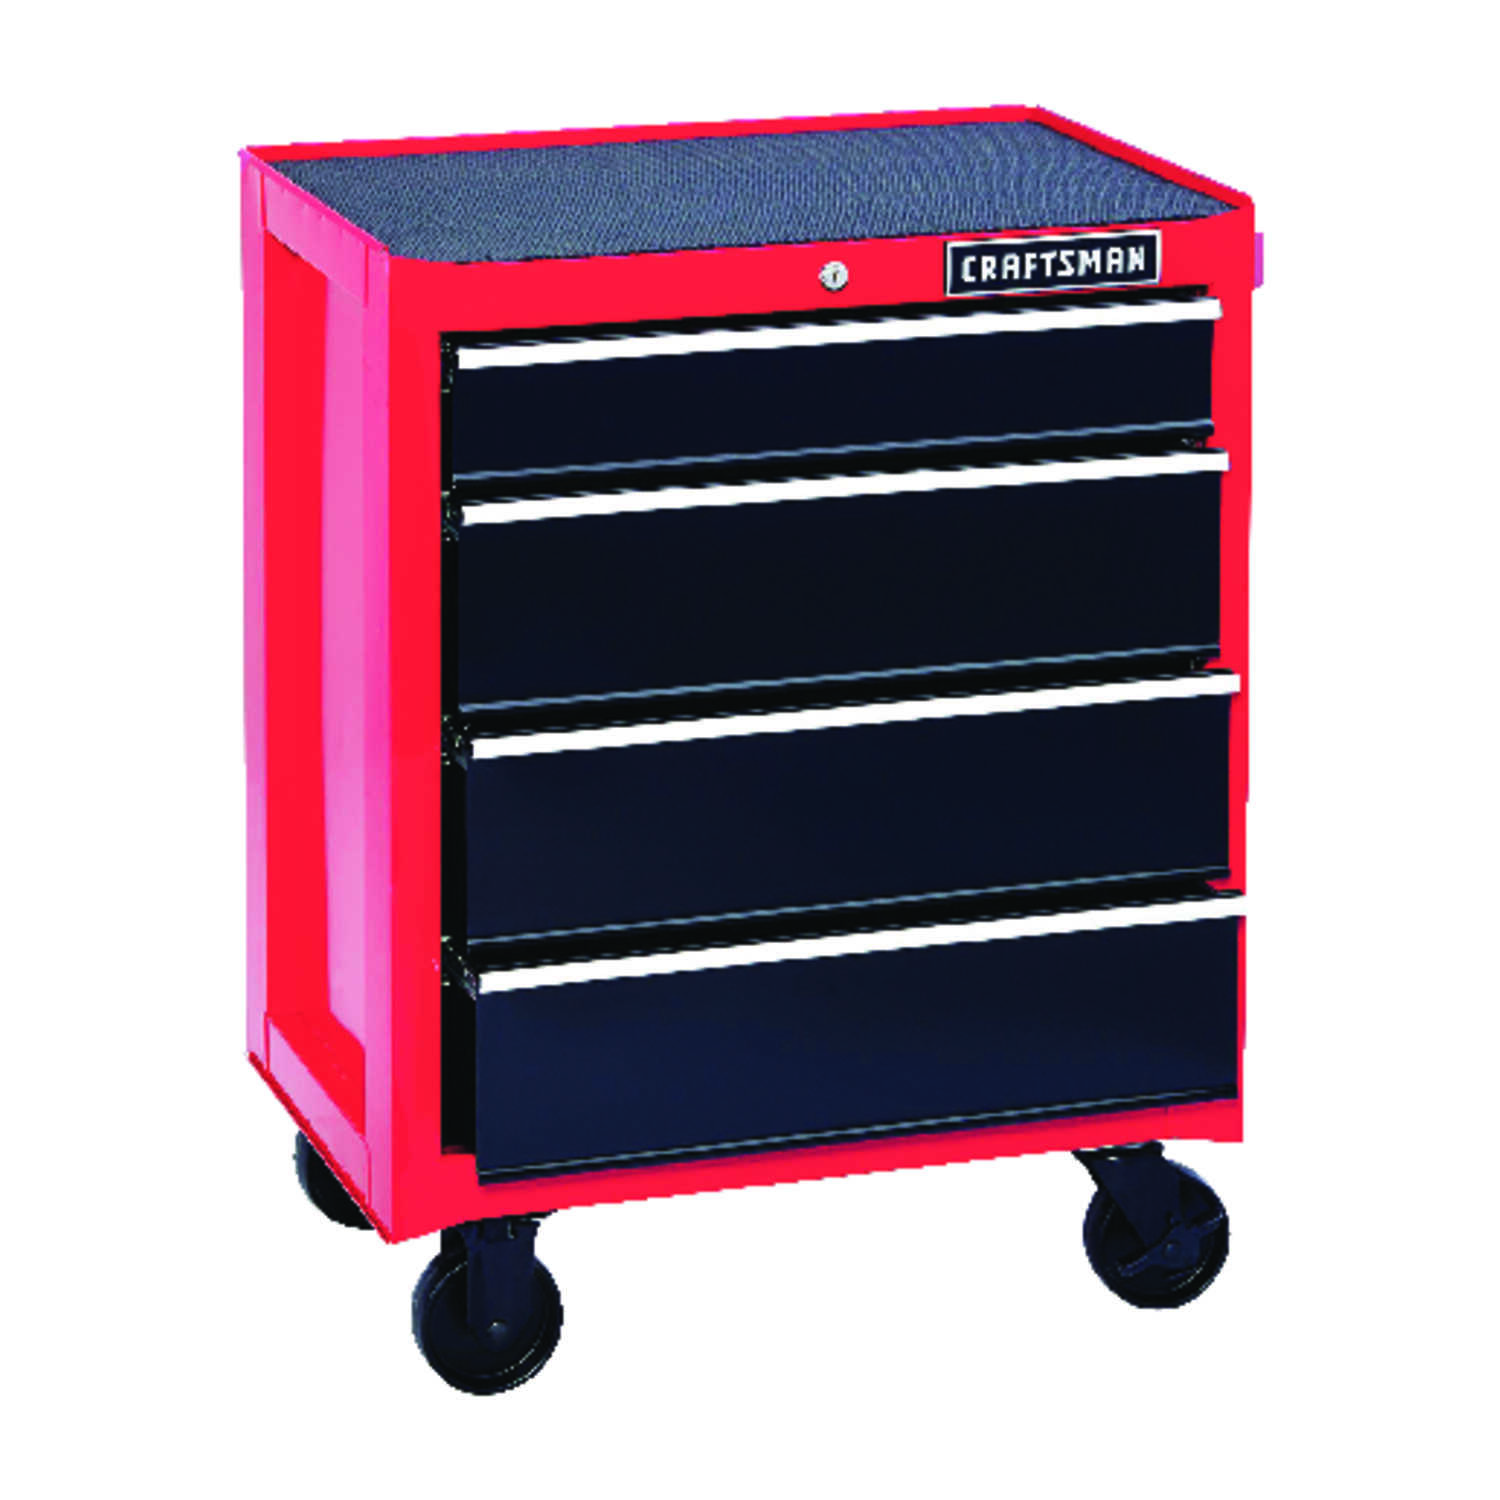 Craftsman  26-1/2 in. 4 drawer Steel  Rolling Tool Cabinet  34 in. H x 18 in. D Red/Black